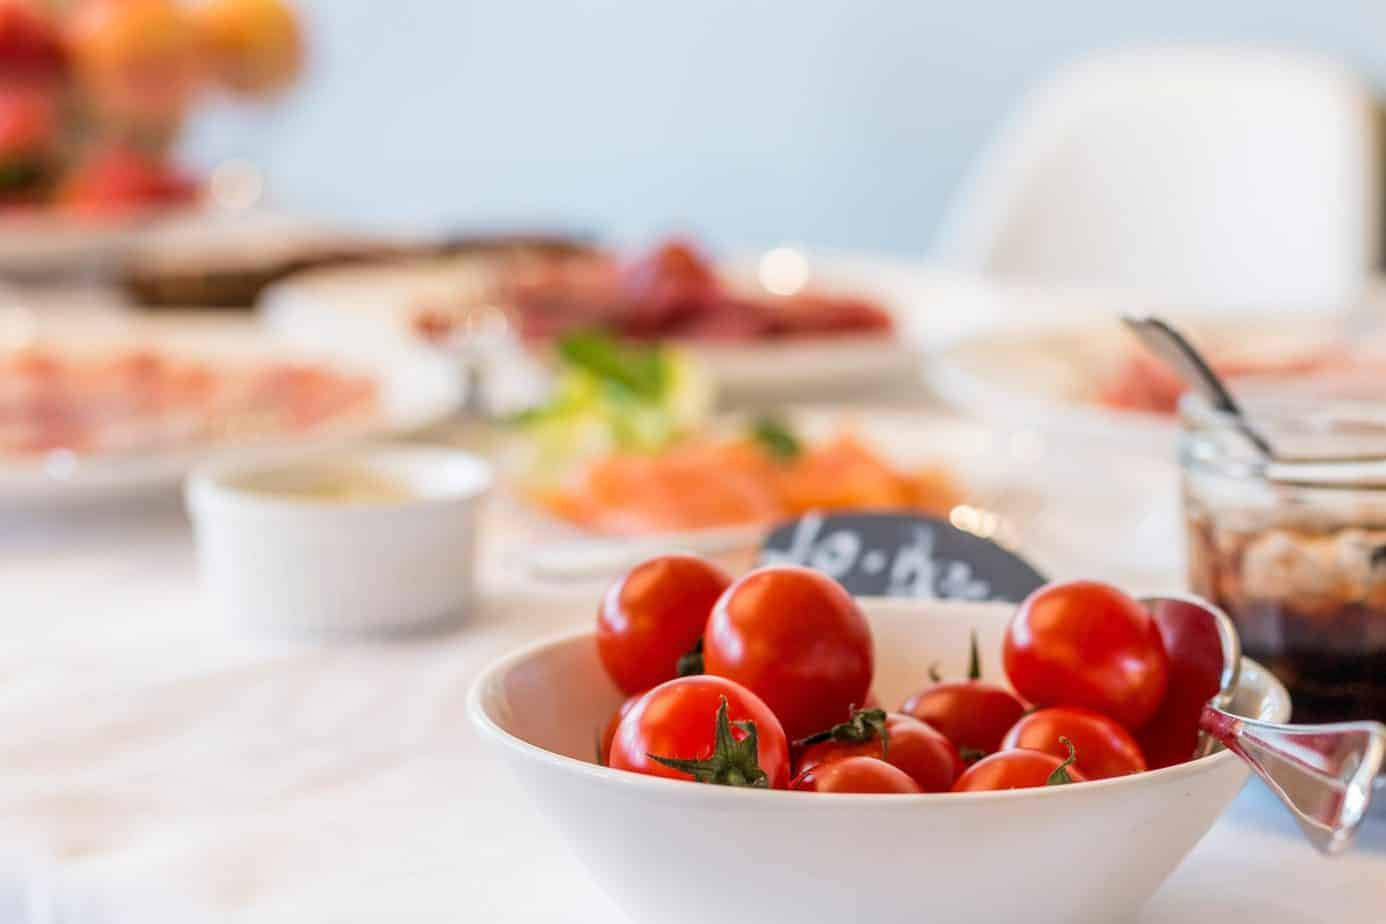 Cherry Tomatoes Are The Perfect Low Carb Keto Snack